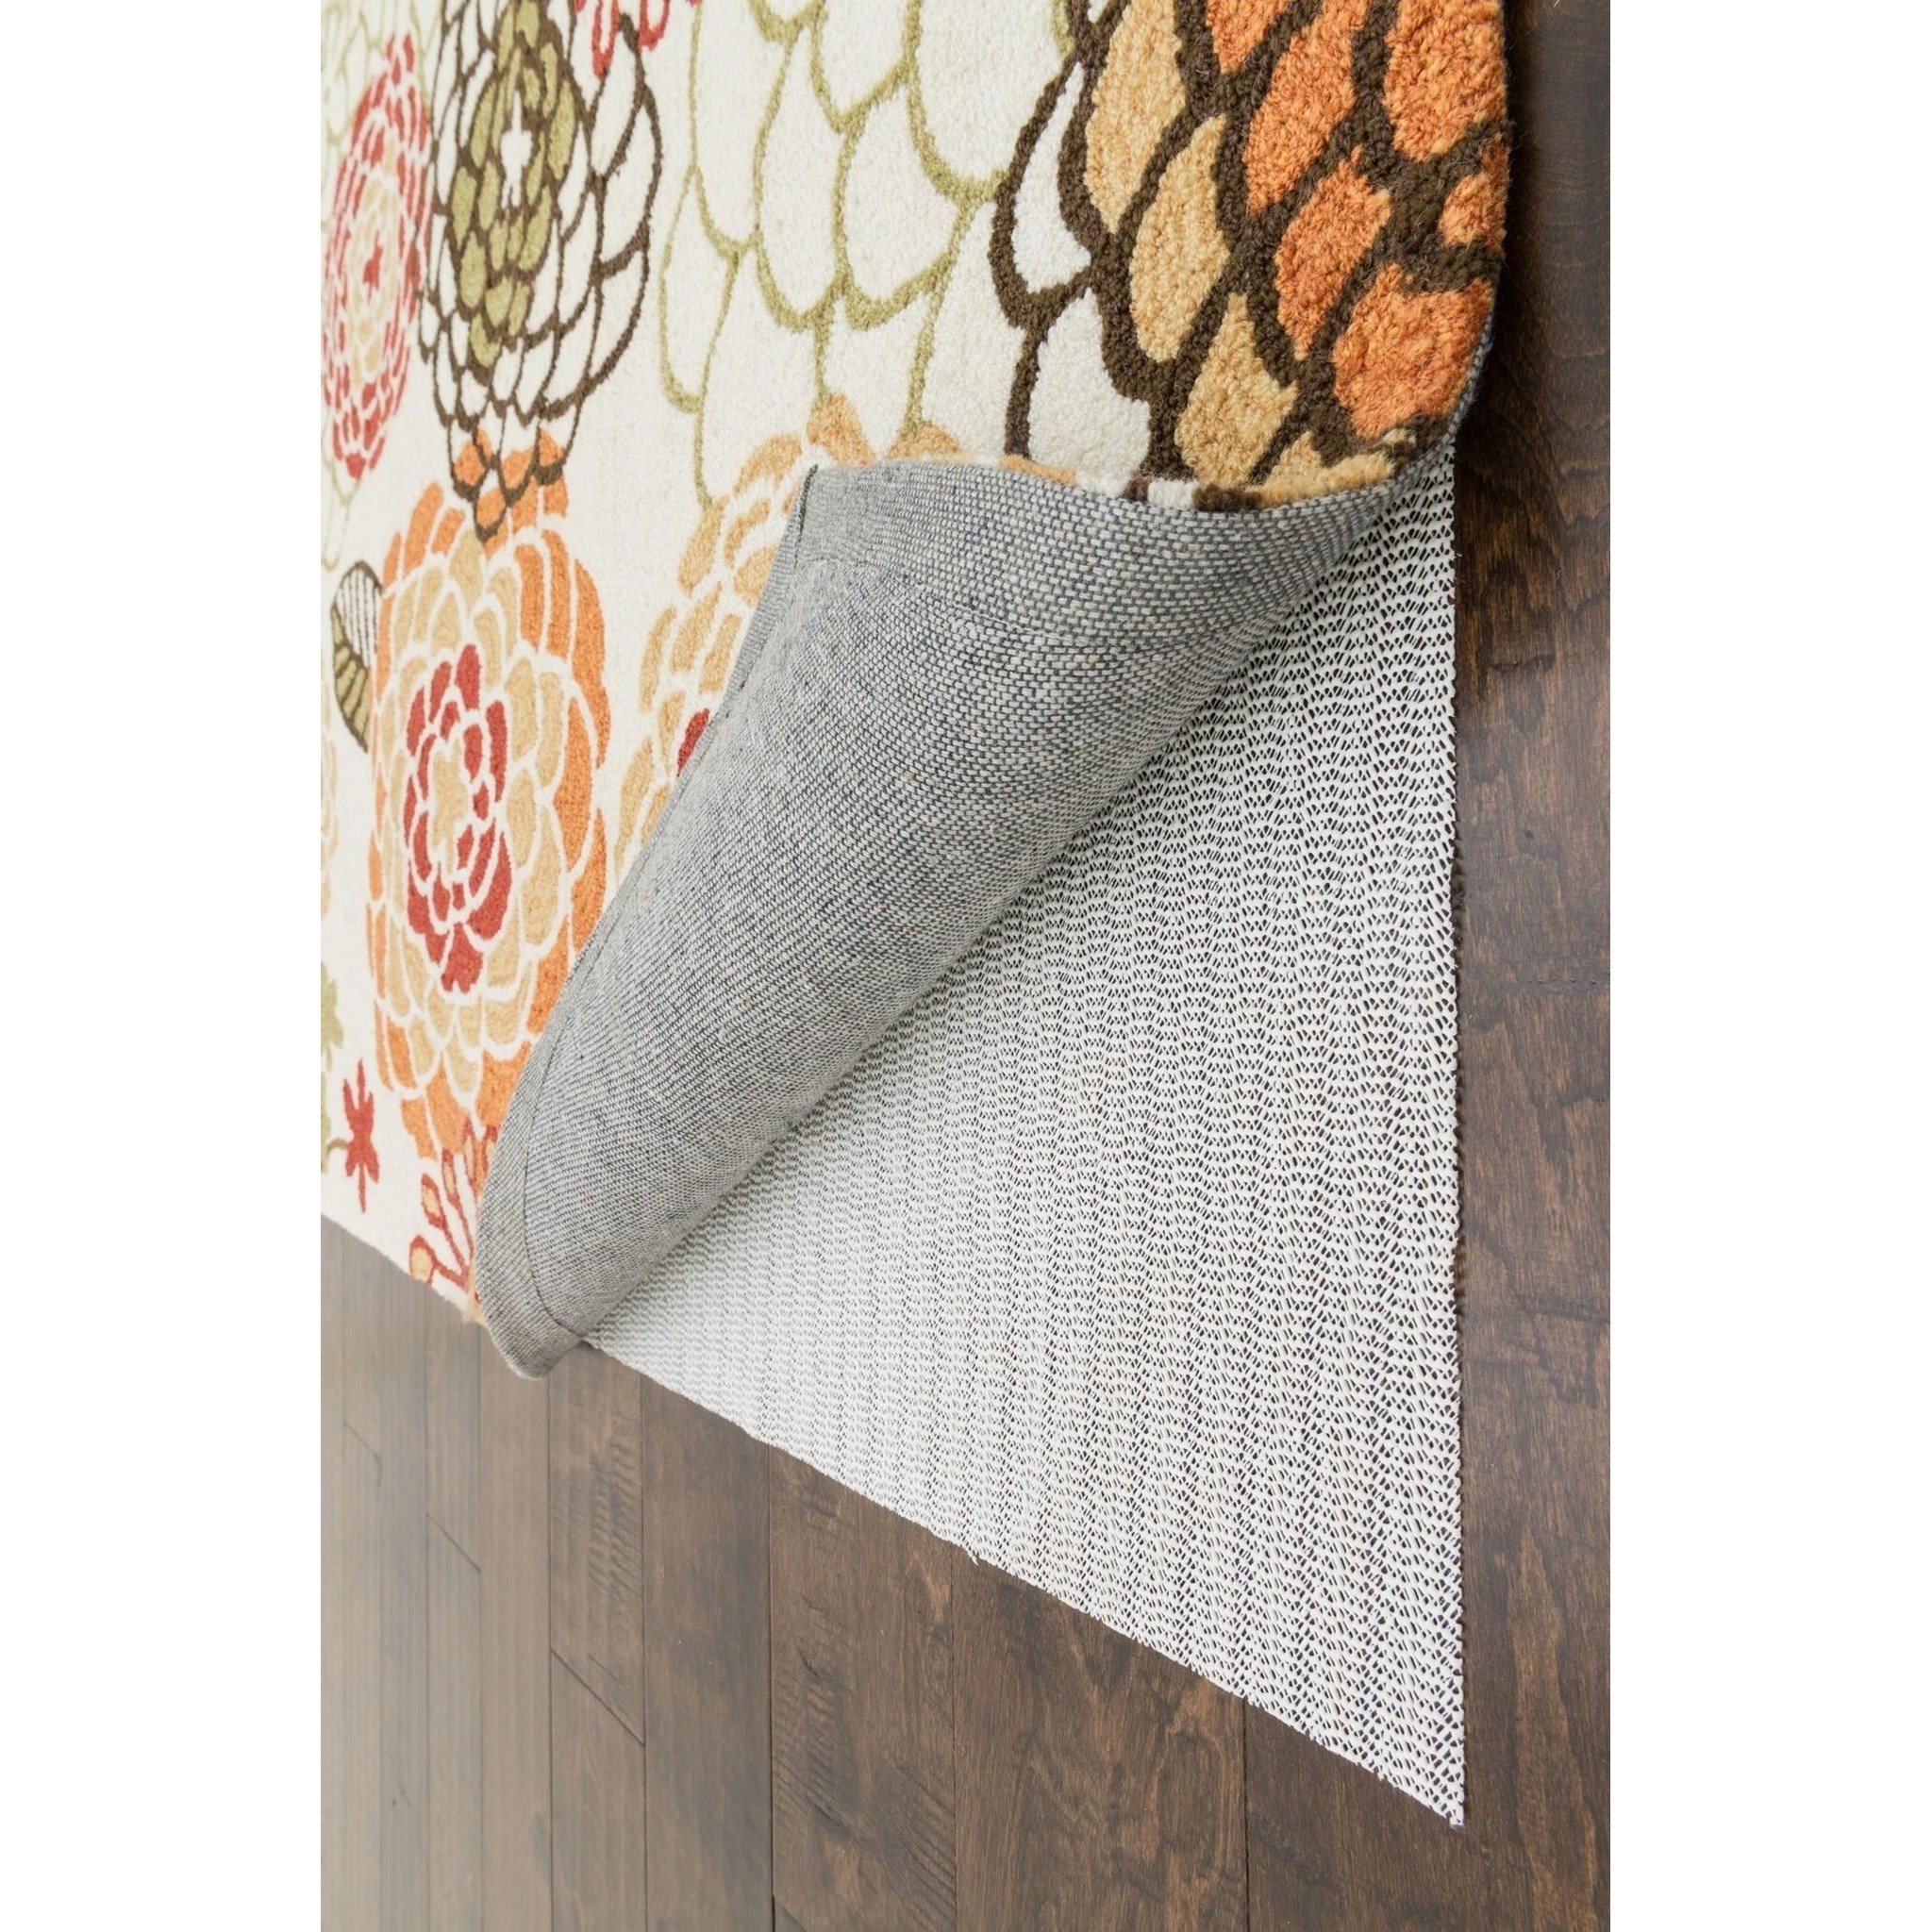 """Secure Grip Rug Pad 12'-0"""" X 15'-0"""" Rug by Loloi Rugs at Virginia Furniture Market"""